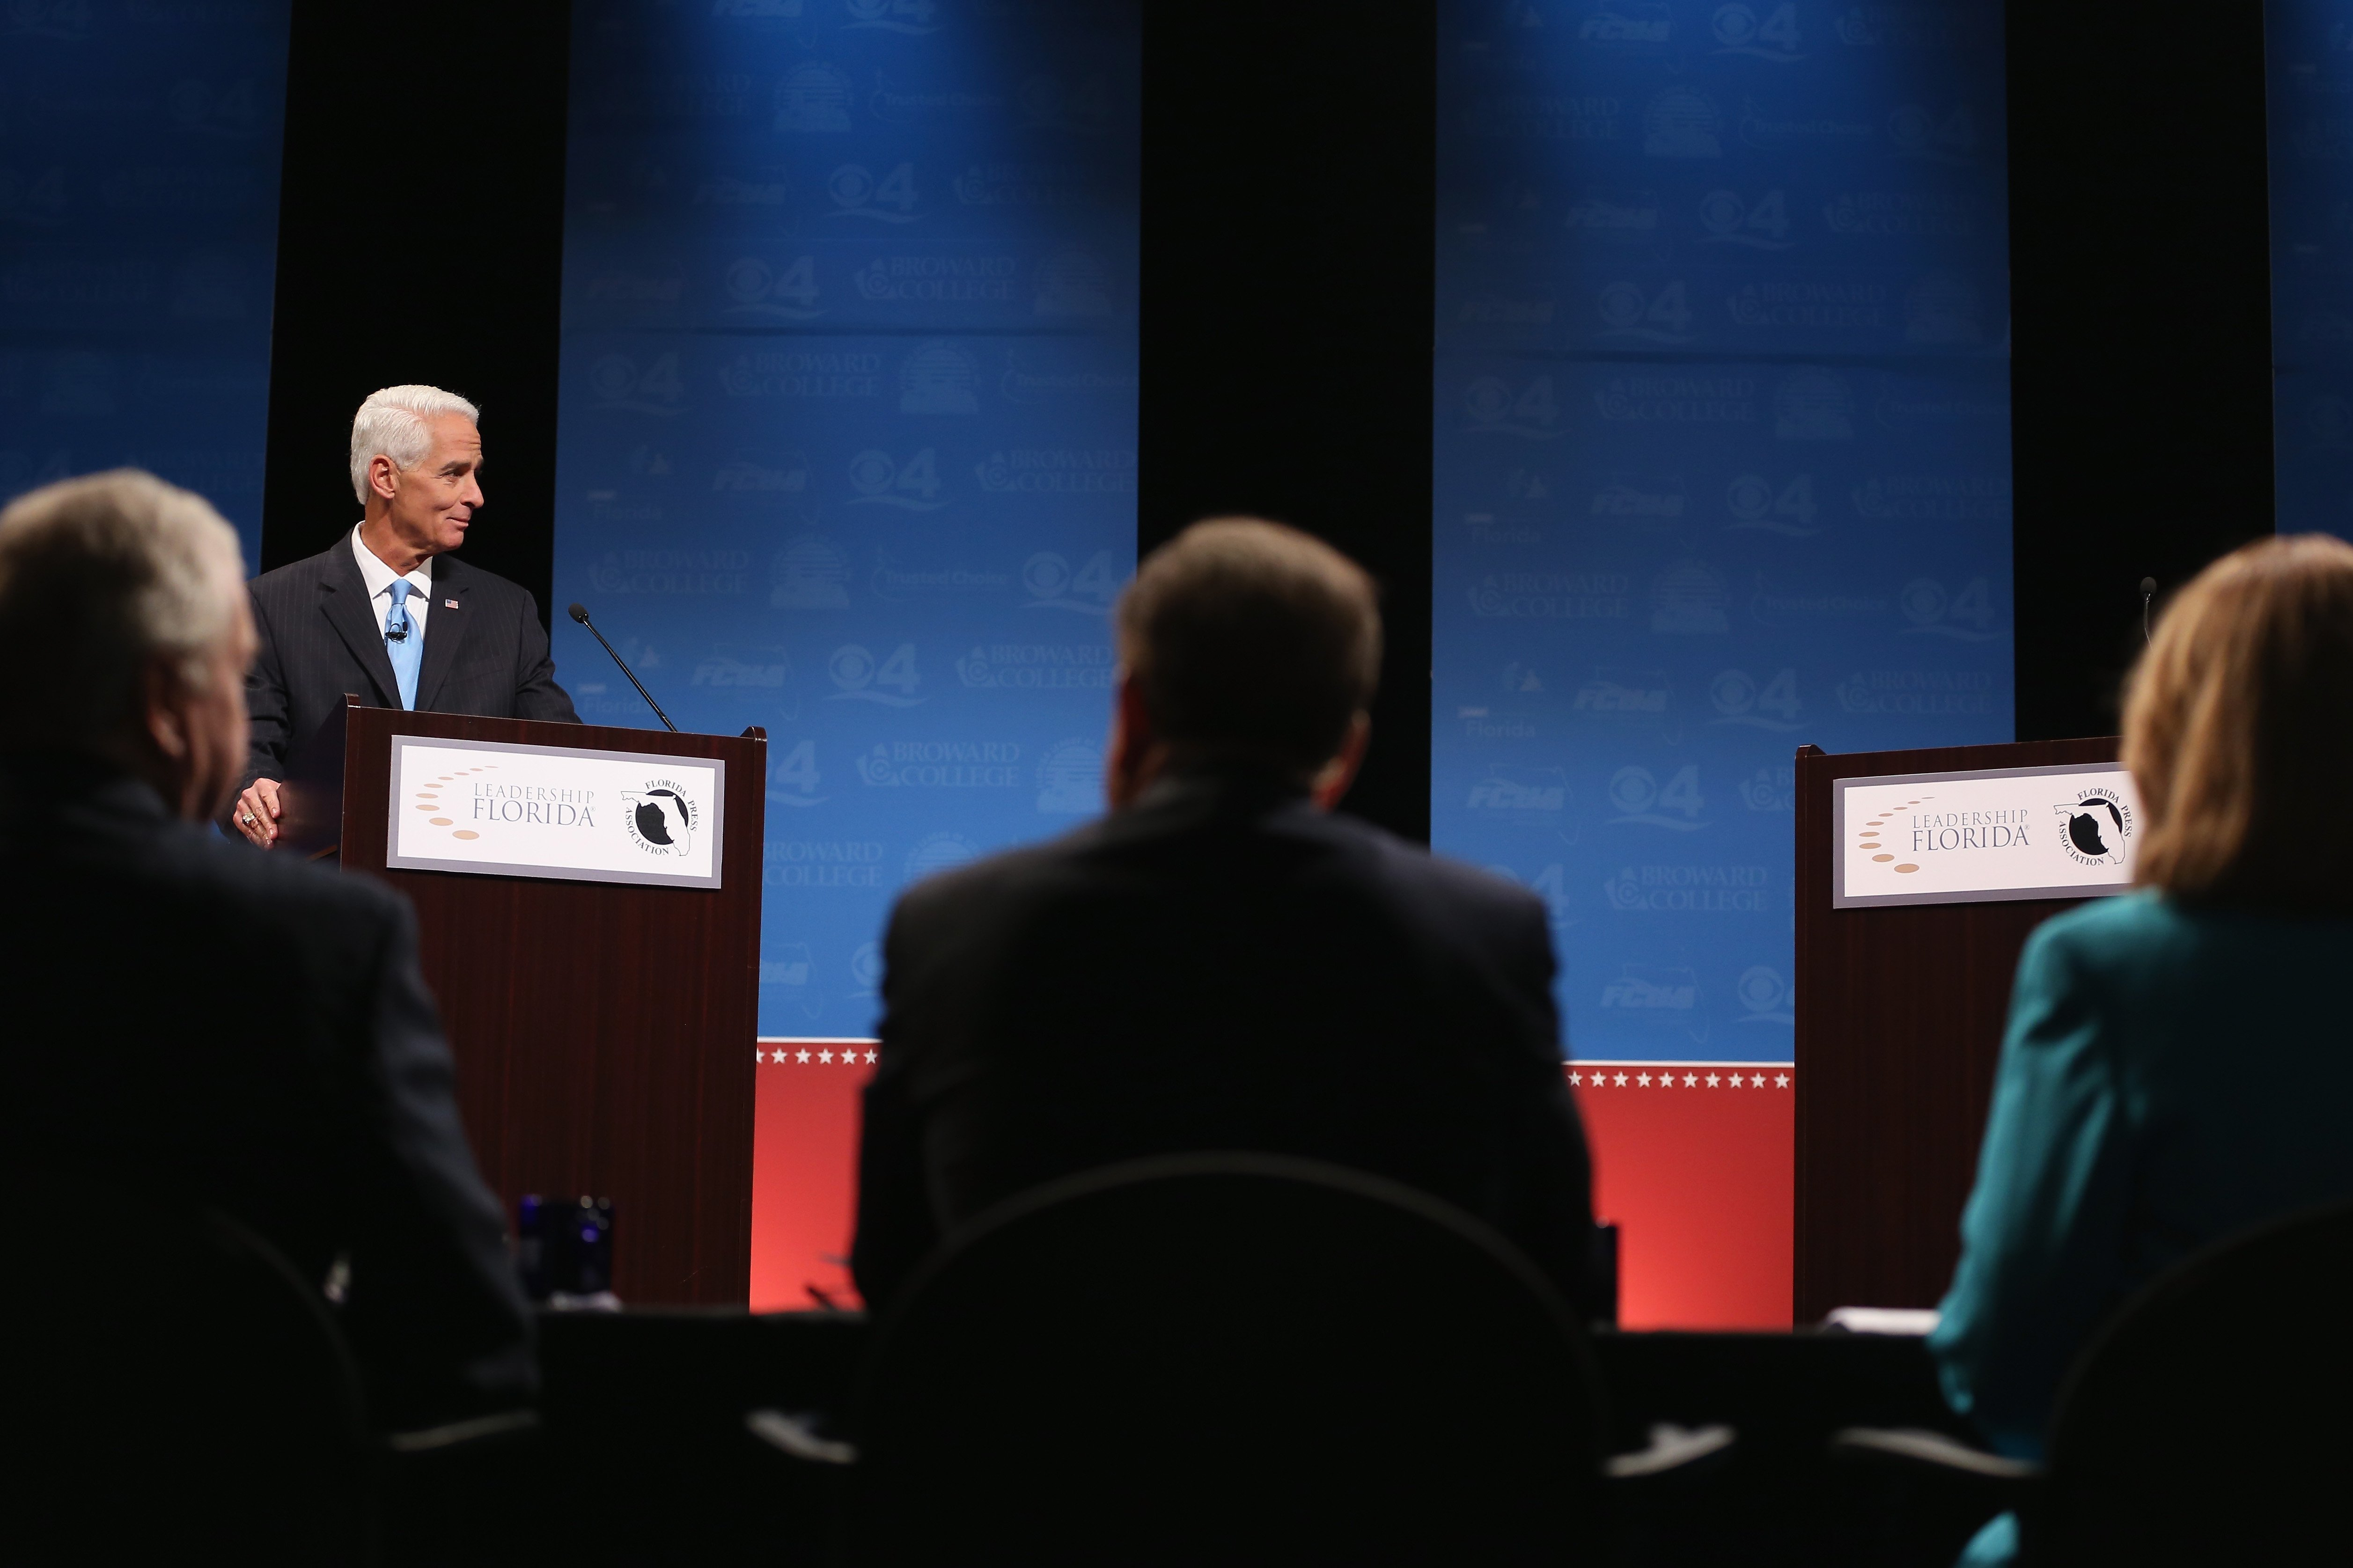 Former Florida Governor and Democratic candidate for Governor Charlie Crist waits next to an empty podium for Republican Florida Governor Rick Scott who delayed his entry onto the stage due to an electric fan that Crist had at his podium at a televised debate at Broward College on Oct. 15, 2014 in Davie, Florida.